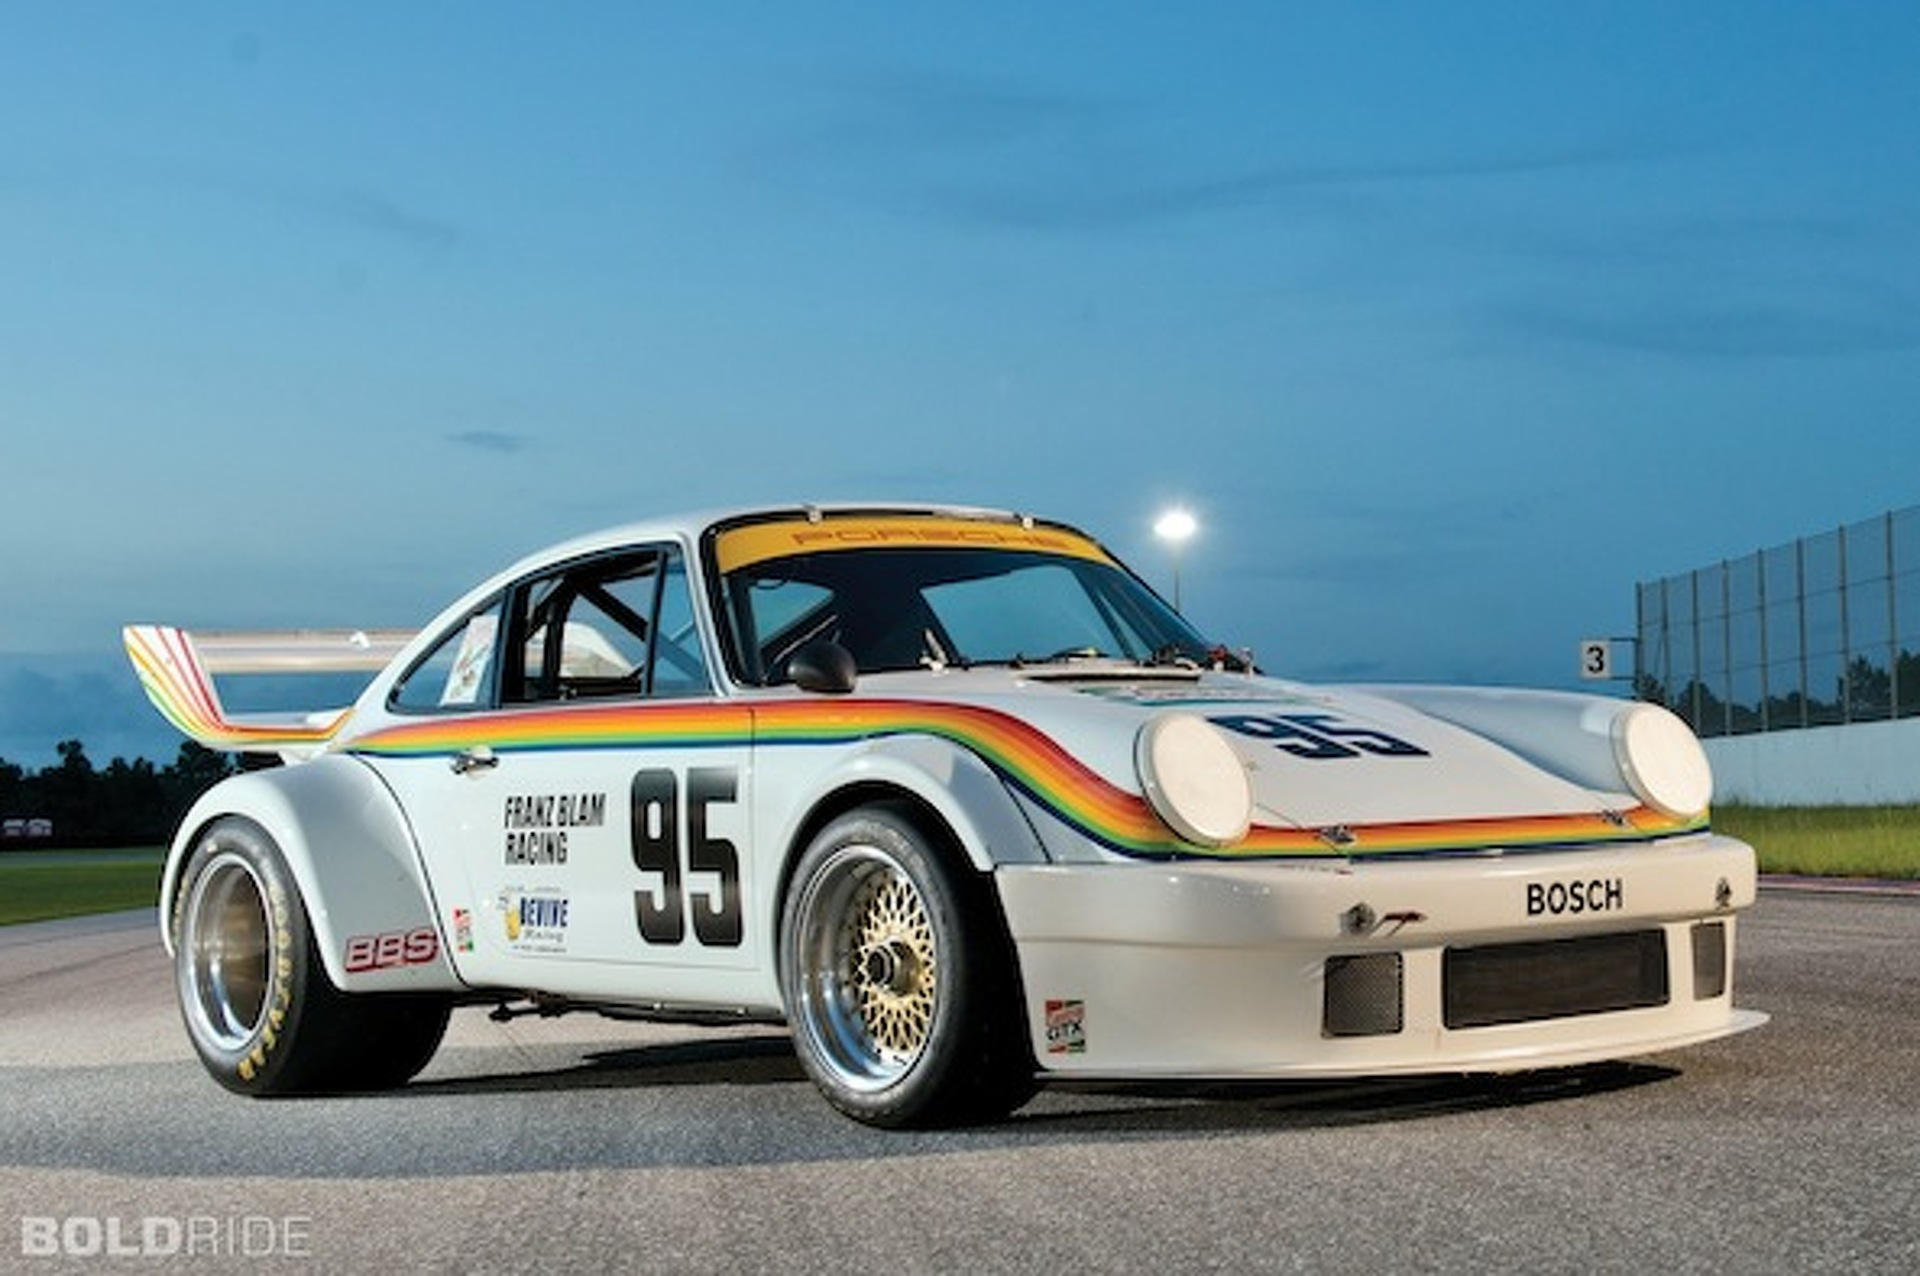 Wheels Wallpaper: 1977 Porsche 934 Turbo RSR